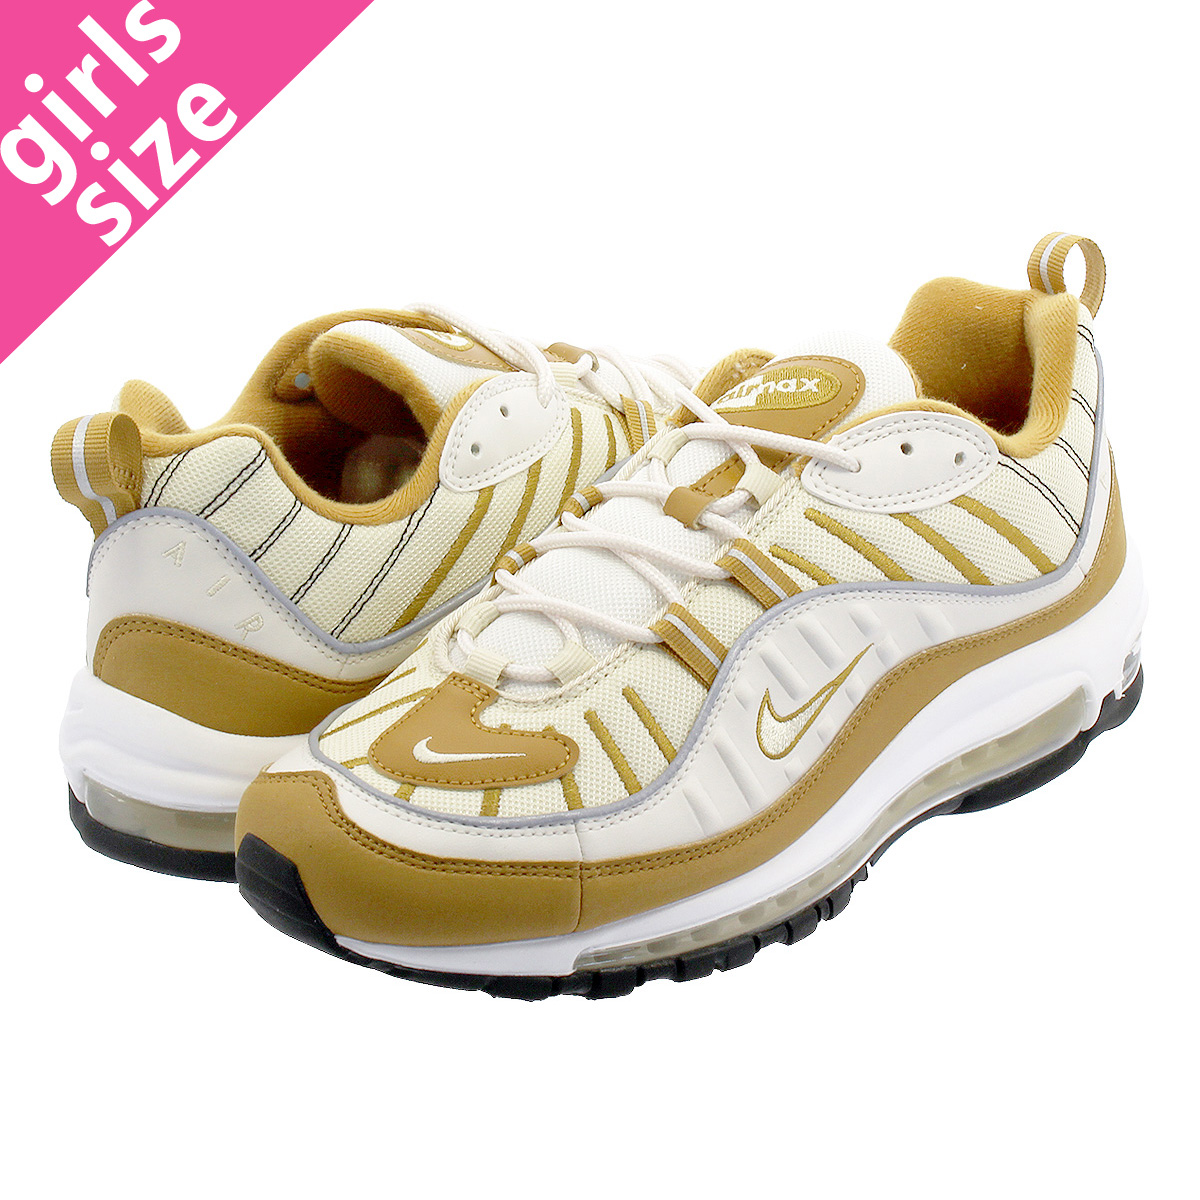 separation shoes a1296 89348 NIKE WMNS AIR MAX 98 Nike women Air Max 98 PHANTOMBEACHWHEATREFLECT  SILVER ah6799-003